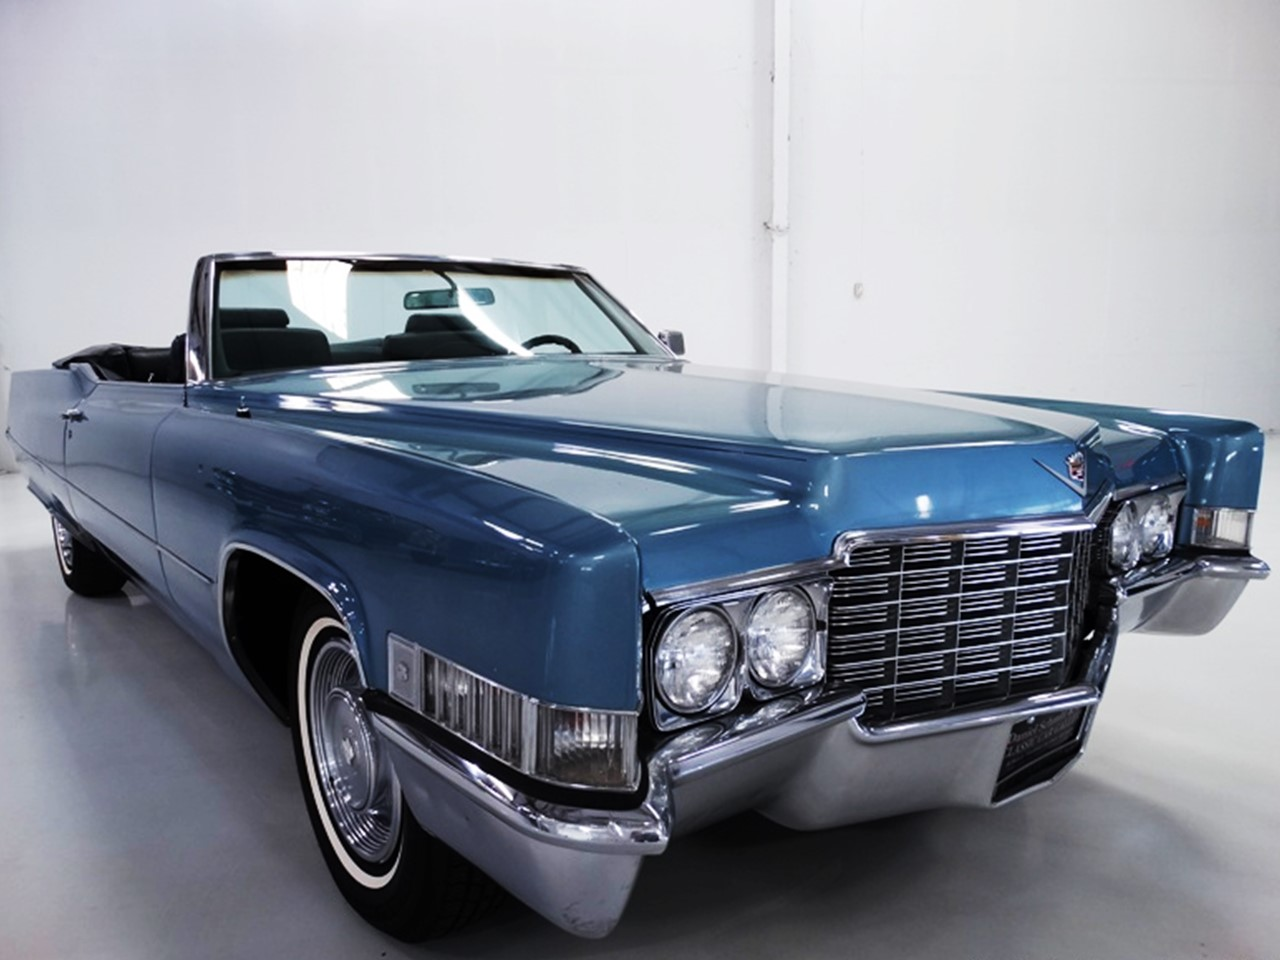 1969 cadillac deville convertible notoriousluxury. Black Bedroom Furniture Sets. Home Design Ideas